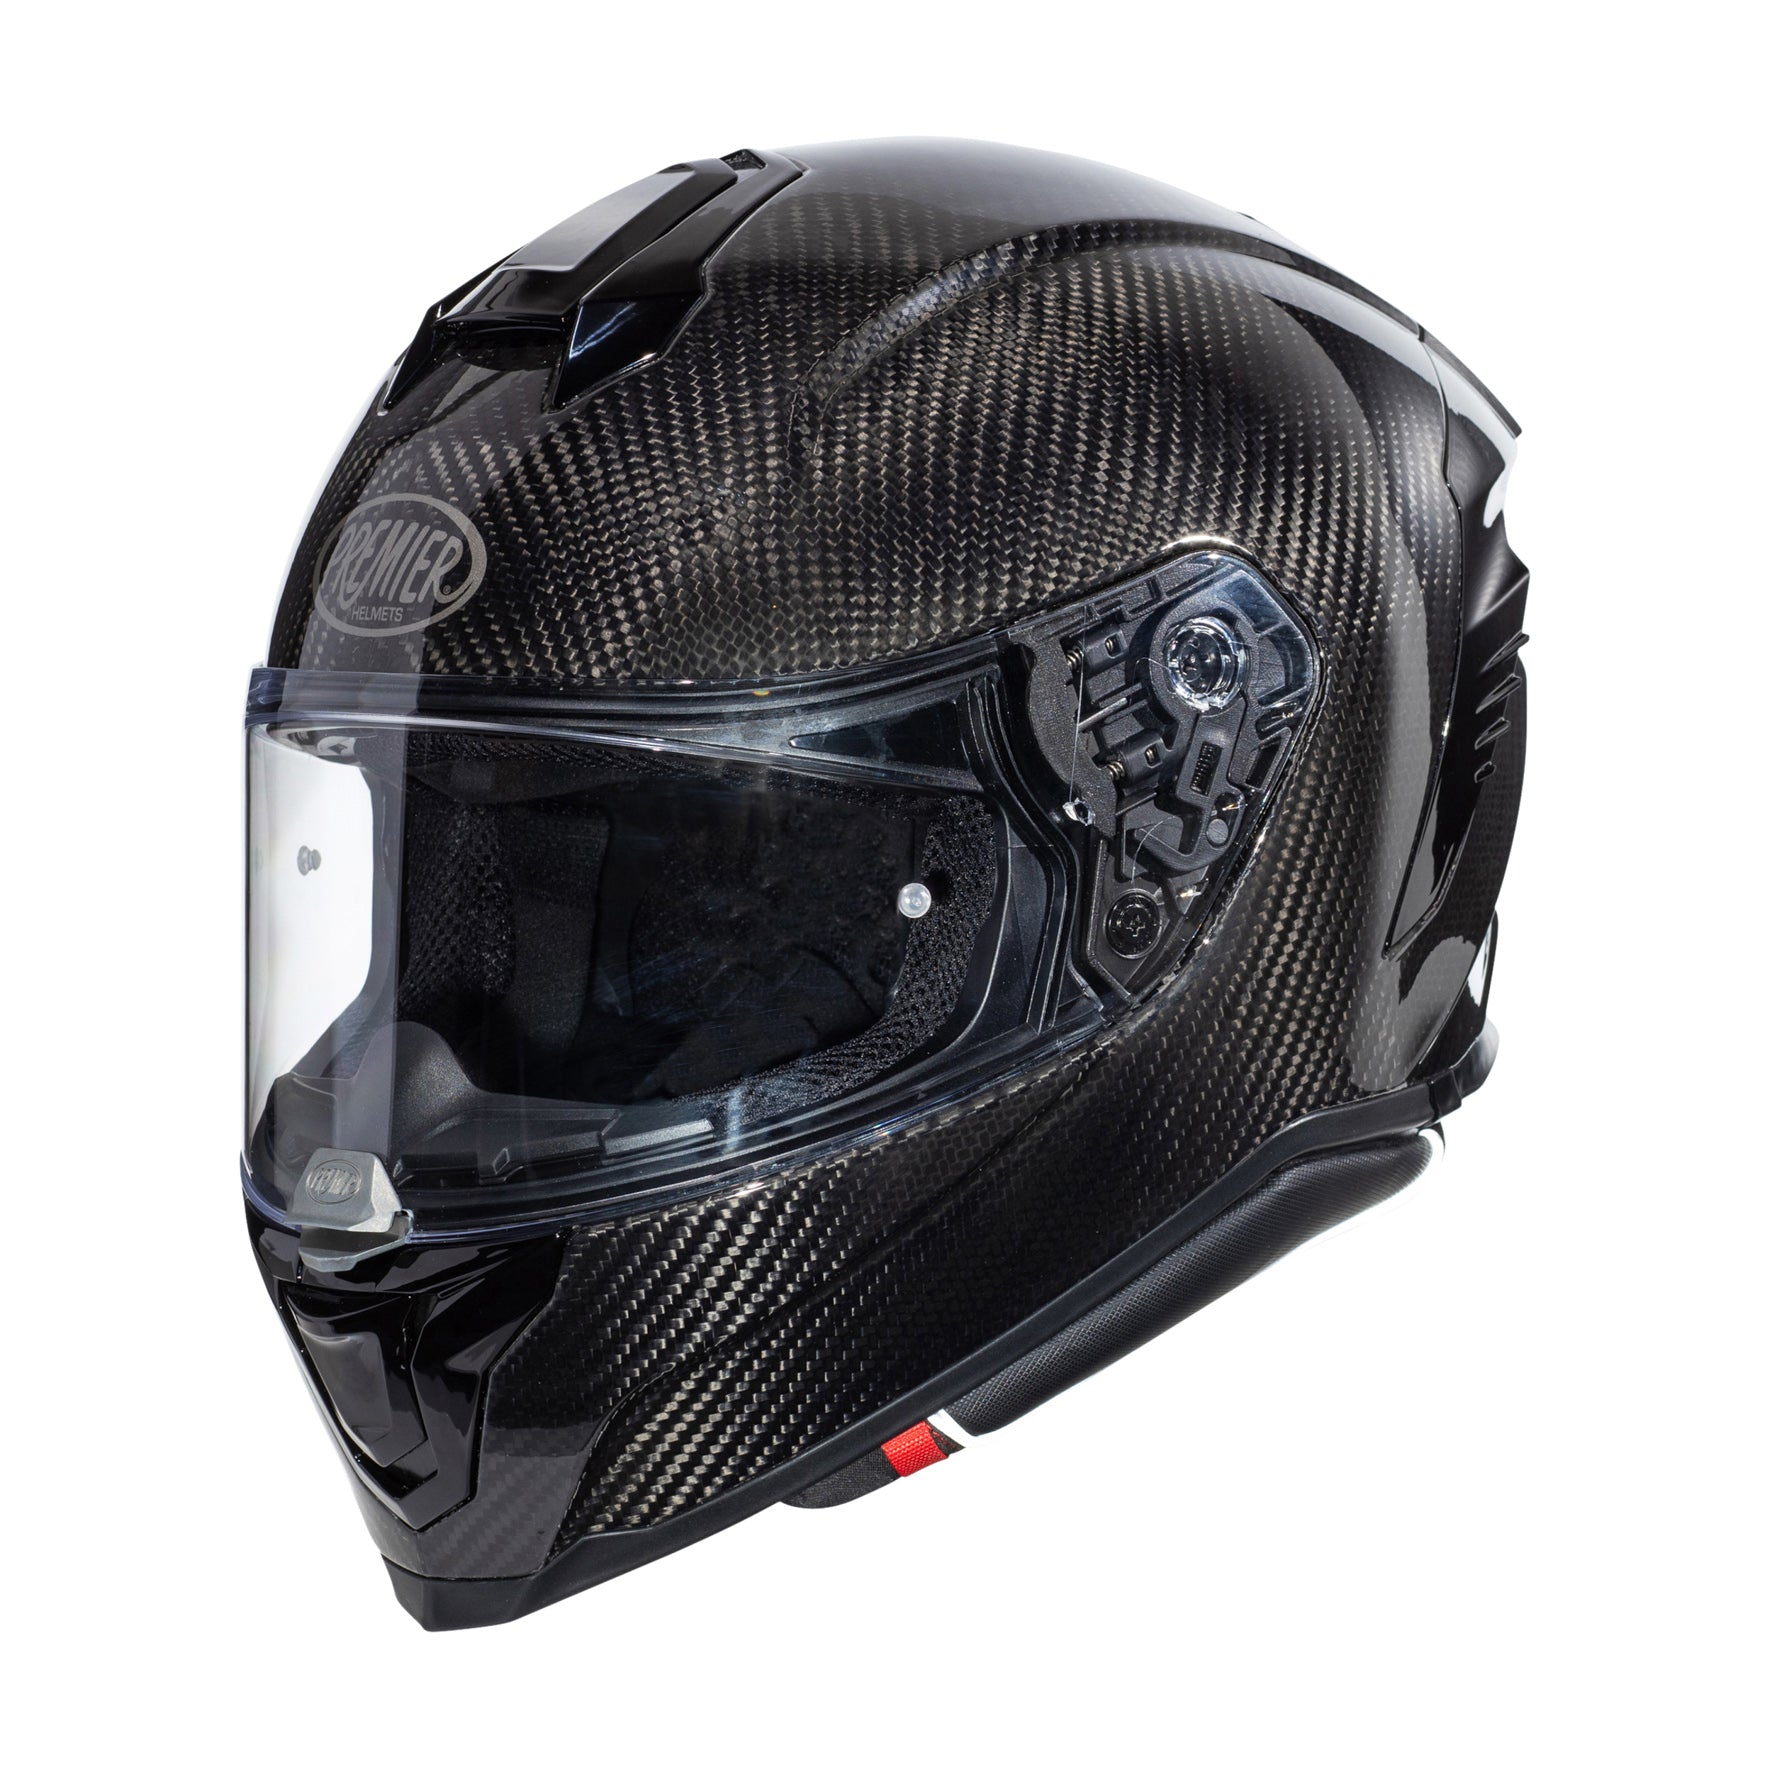 Hyper Carbon, Helmet, Premier Helmets - Race and Trackday Parts